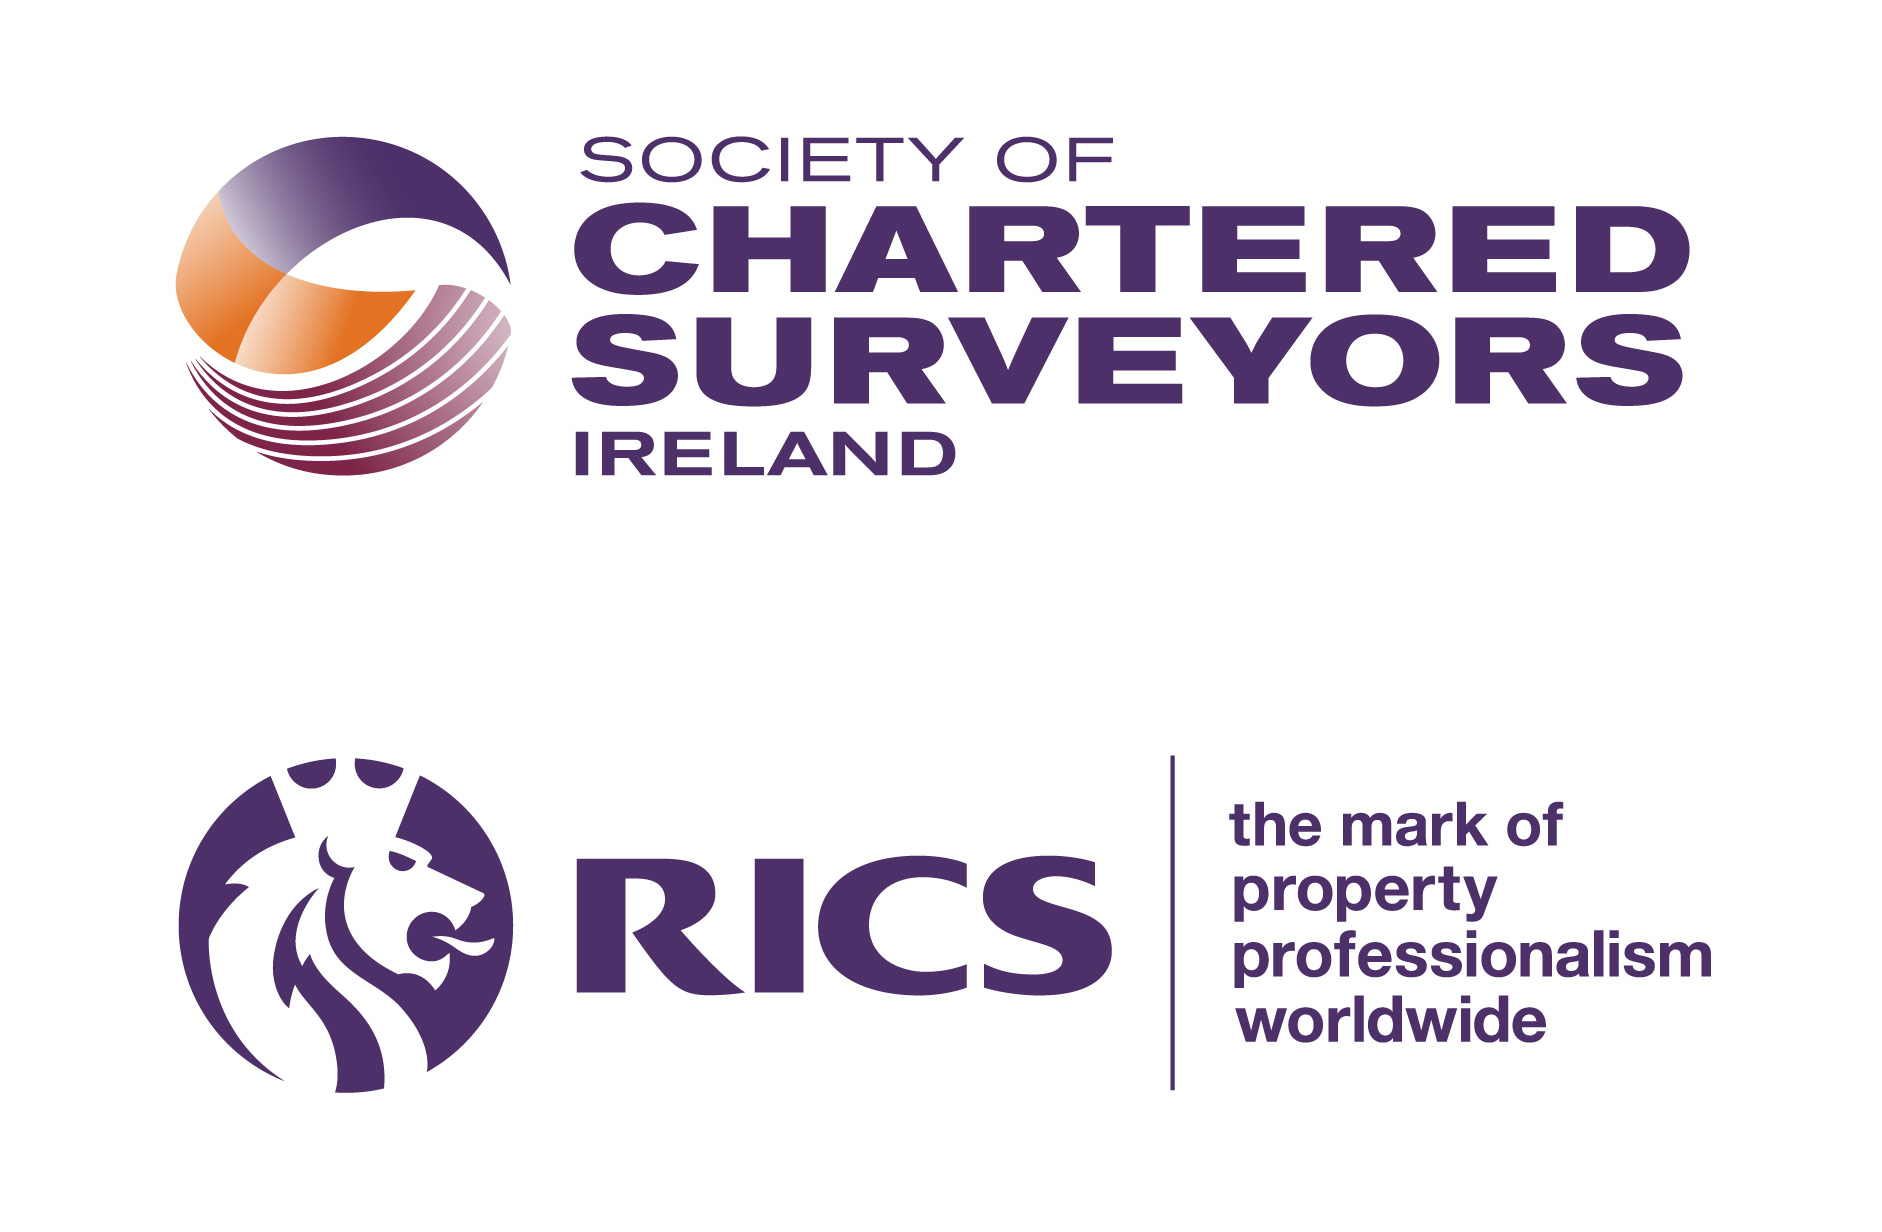 SCSI Logo - Society of Chartered Surveyors Ireland